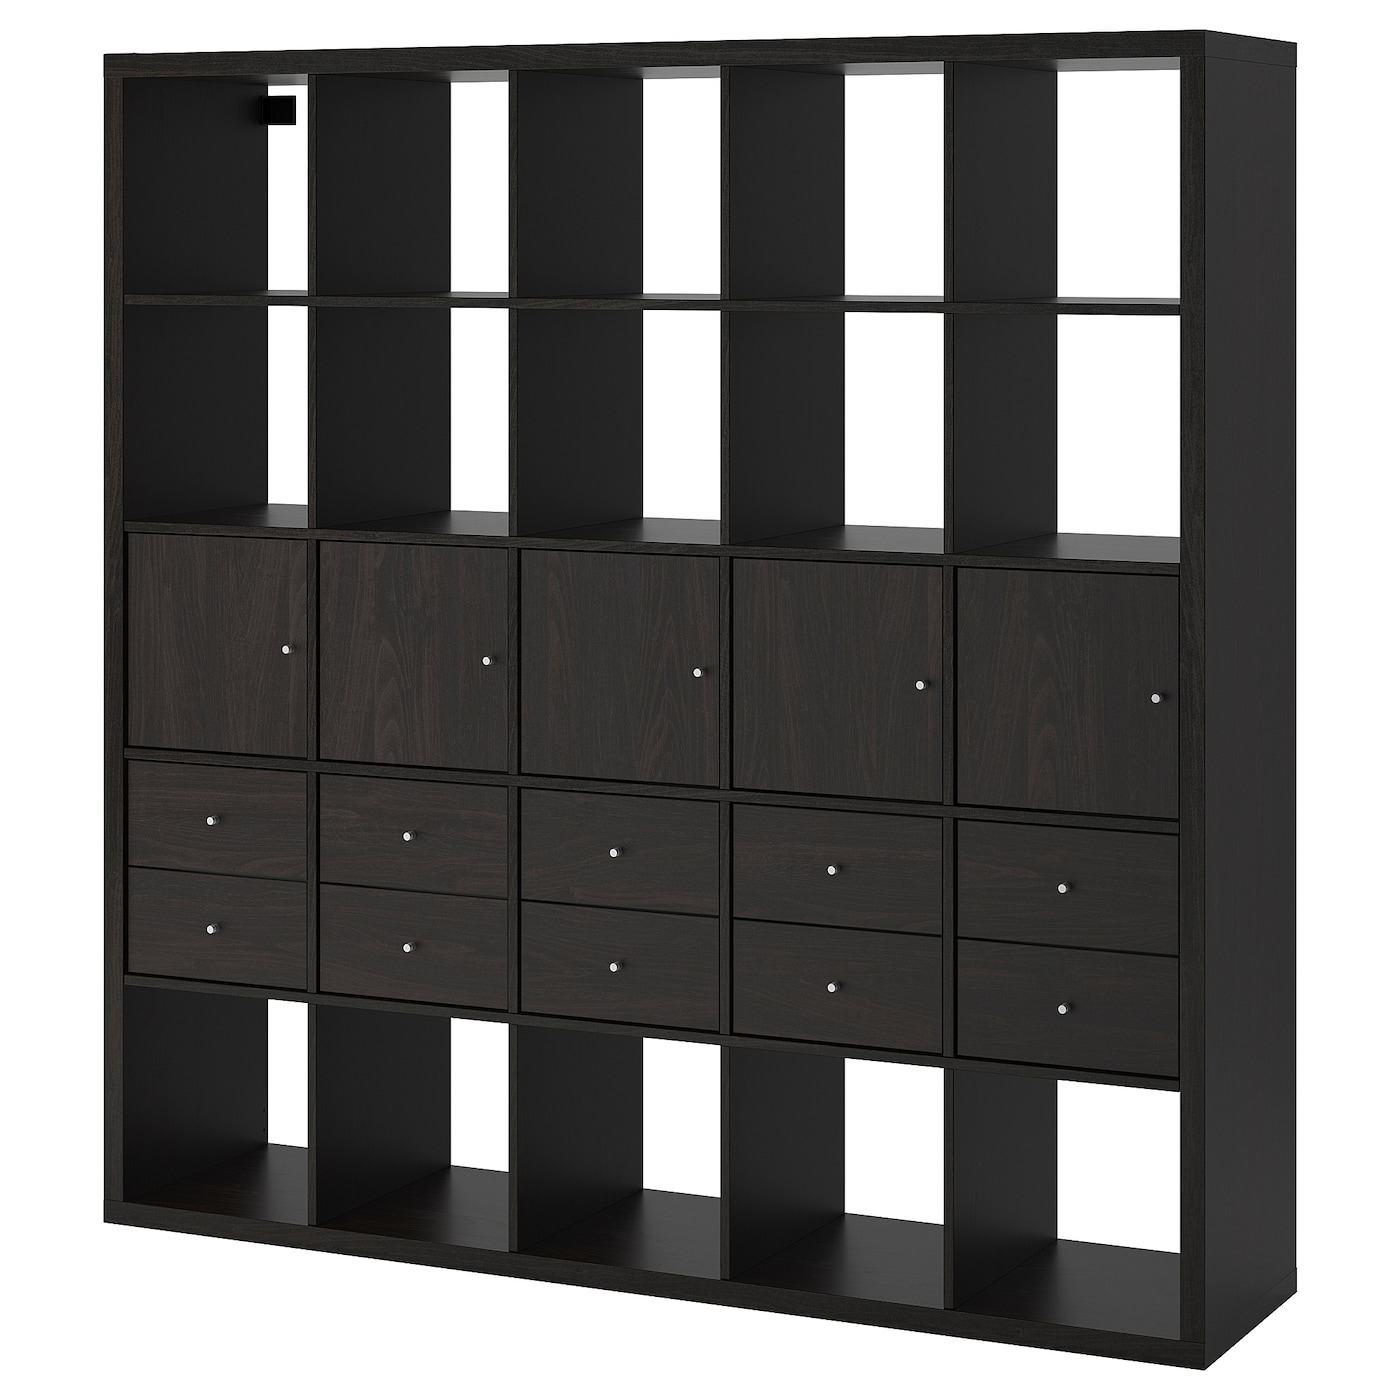 KALLAX Shelving unit with 10 inserts black brown 182x182 cm